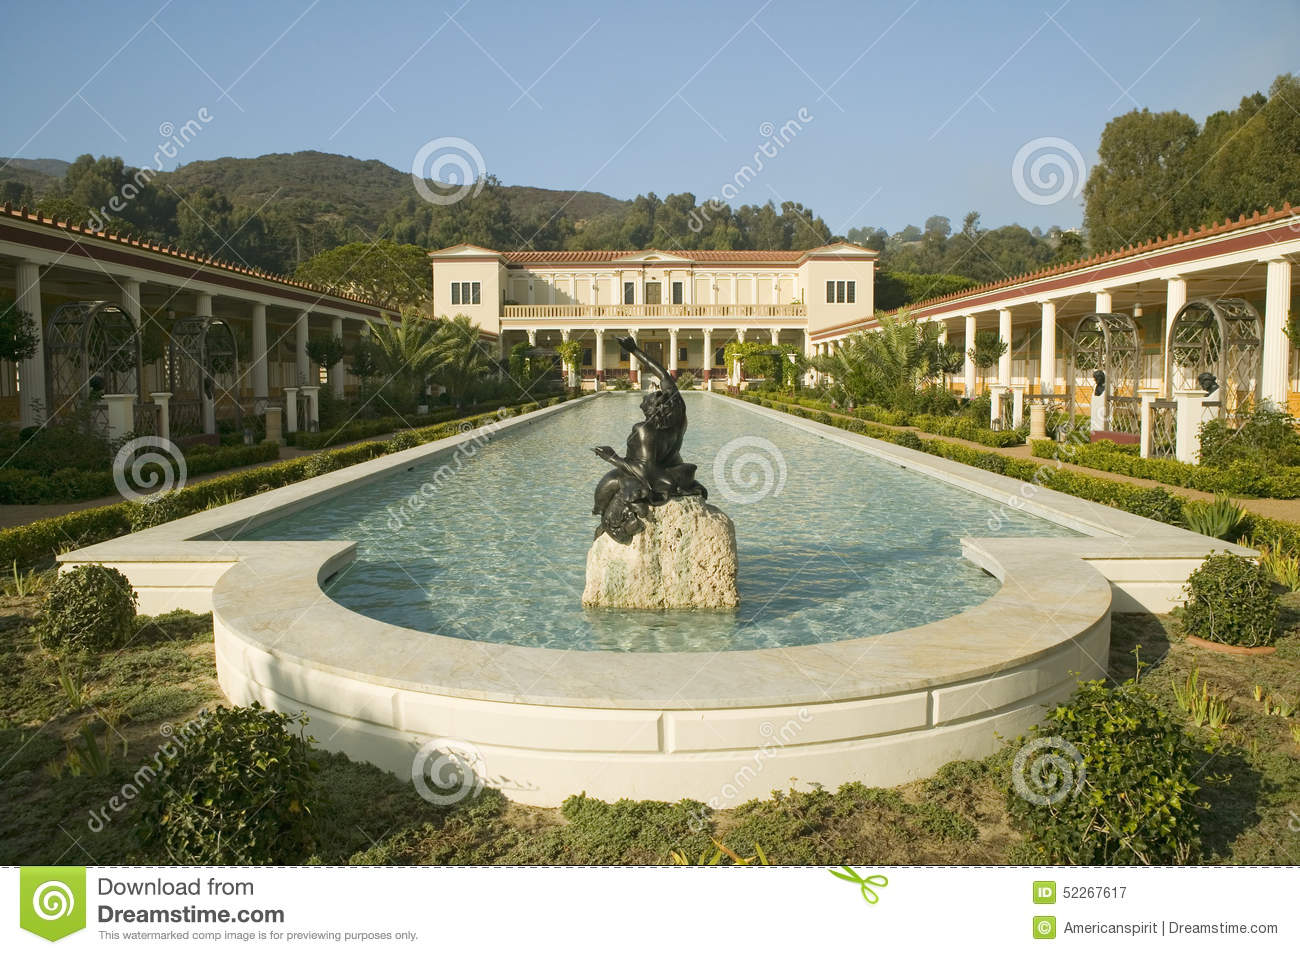 Paul Getty Museum Pool Royalty Free Stock Photo.